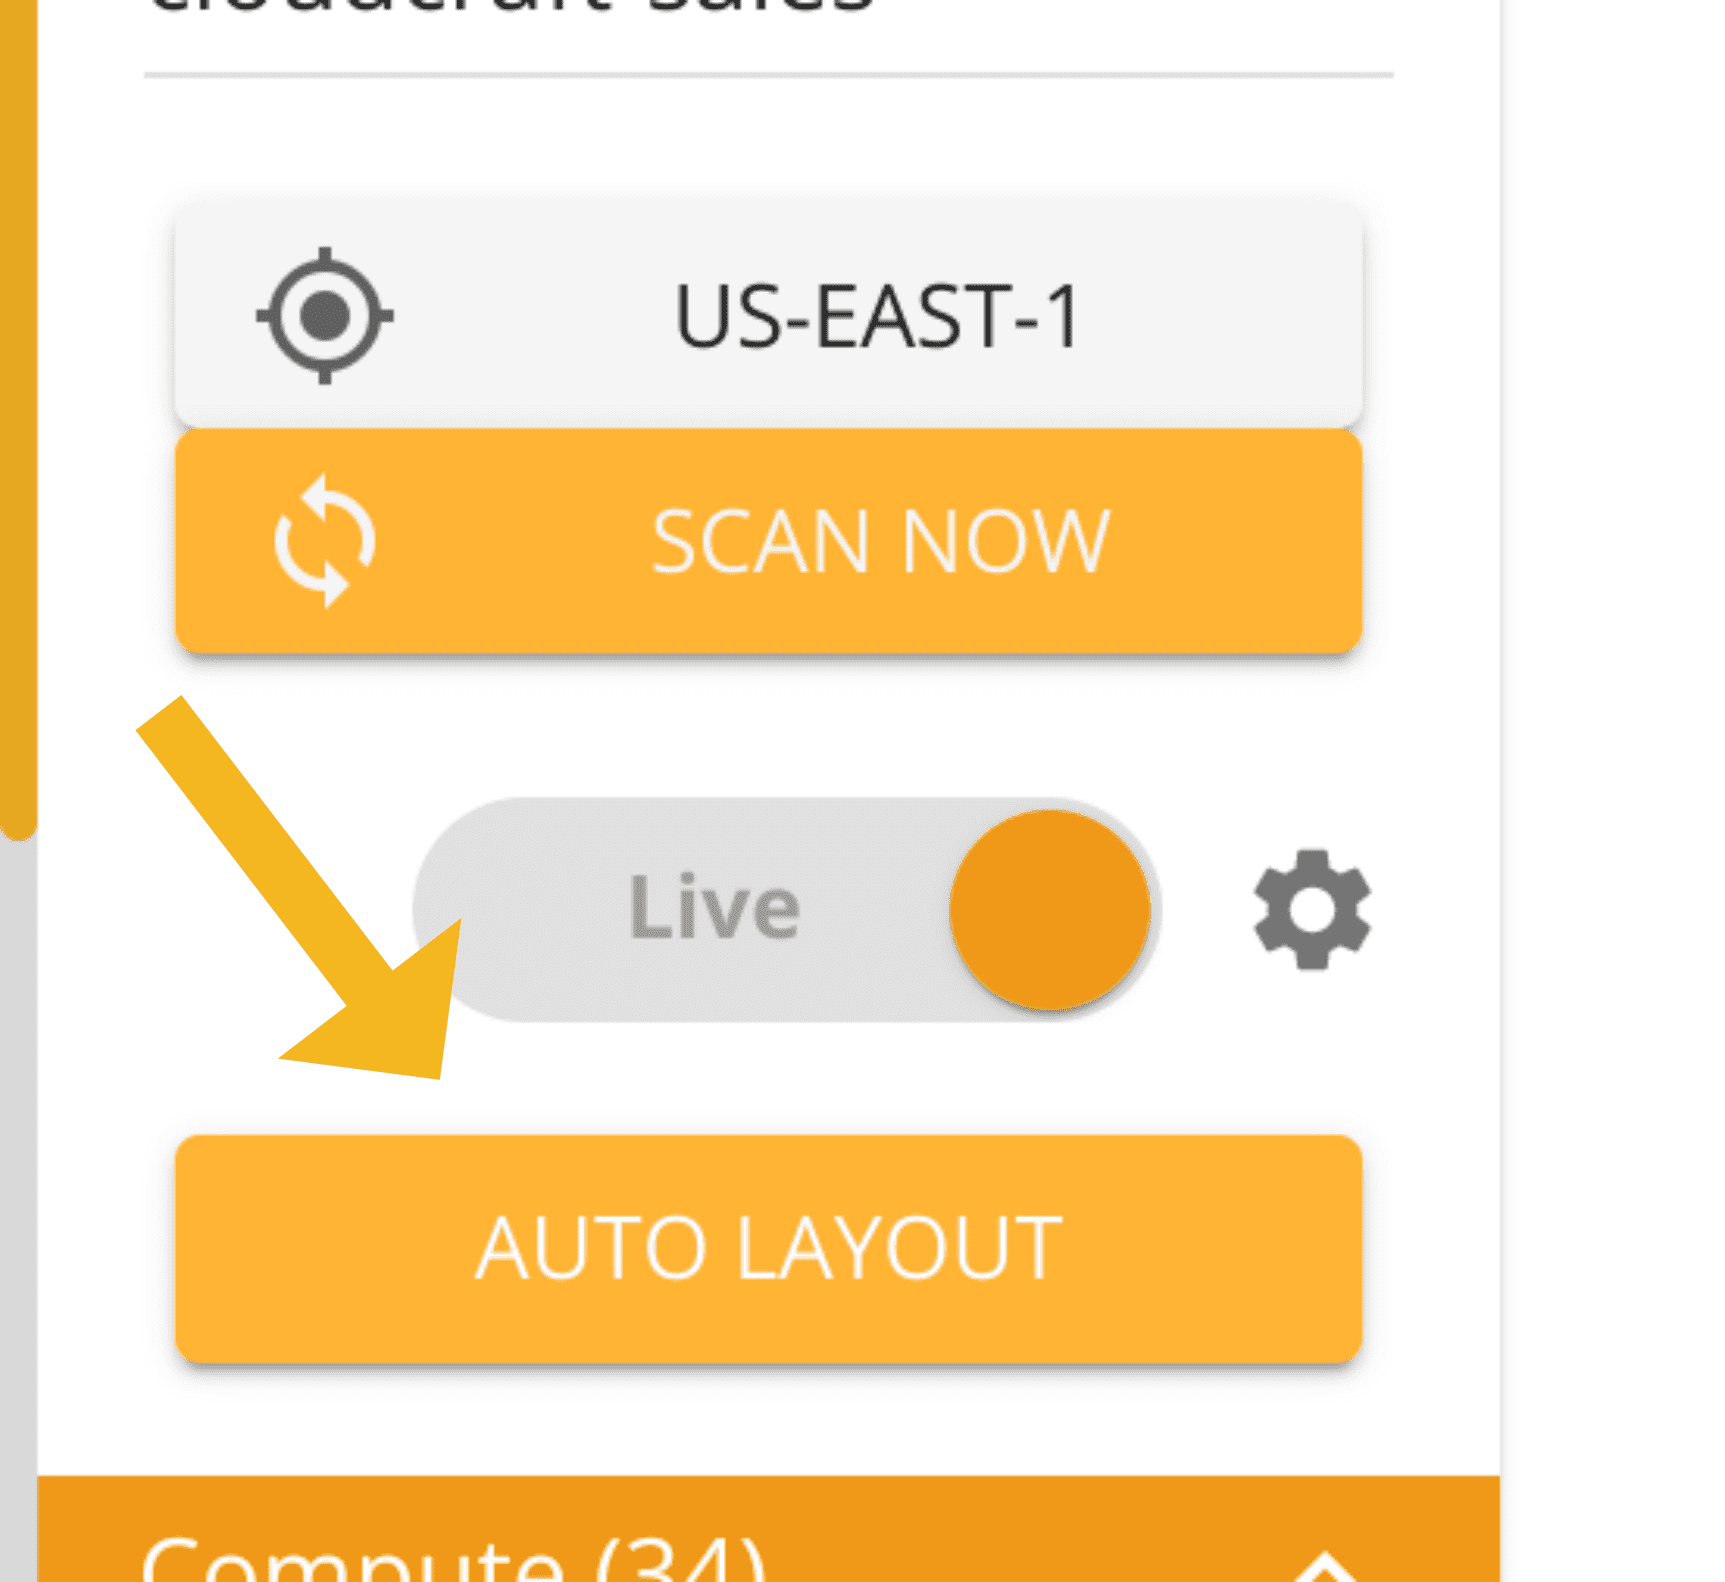 The Auto Layout button